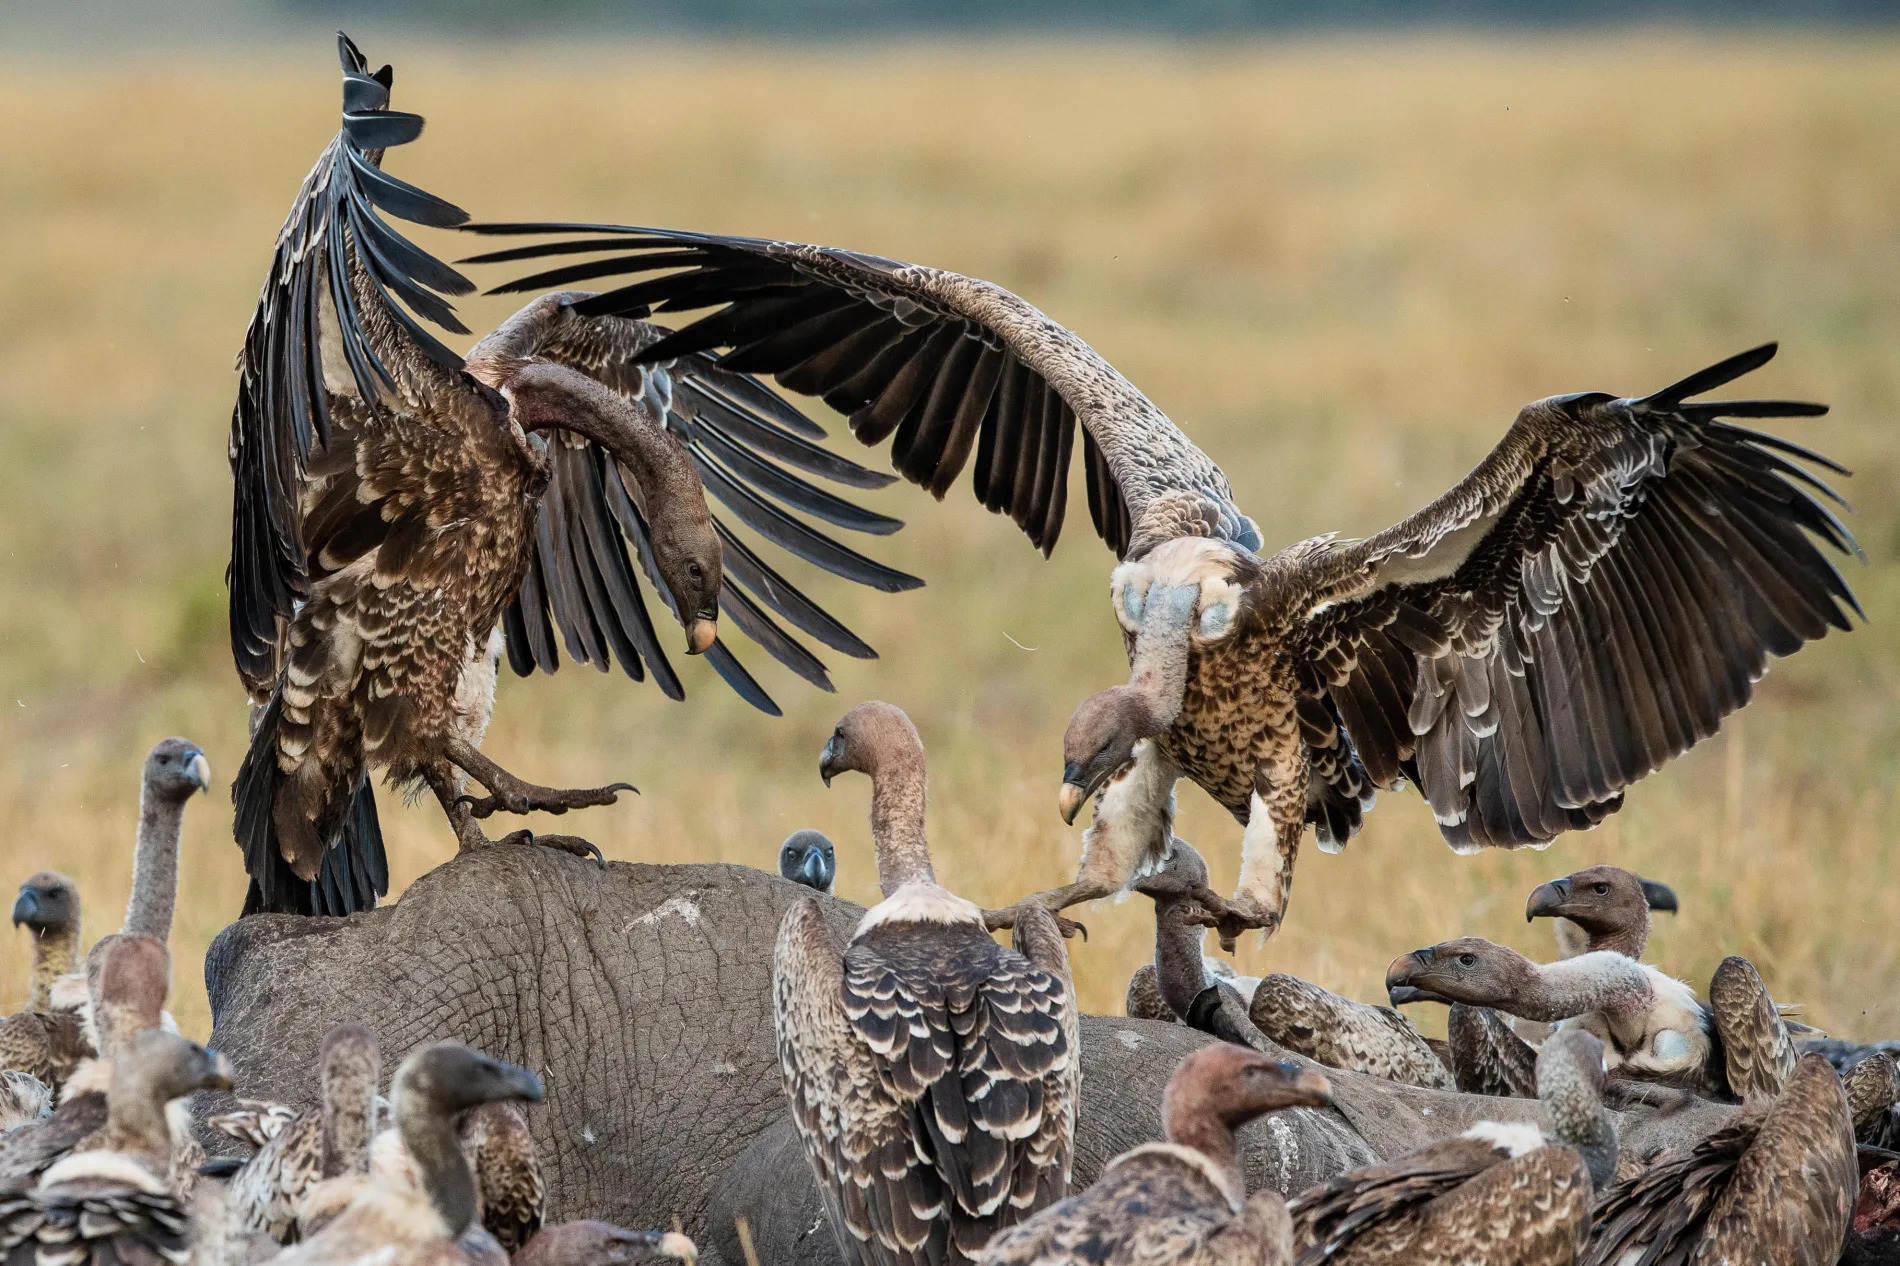 Male High stakes vultures